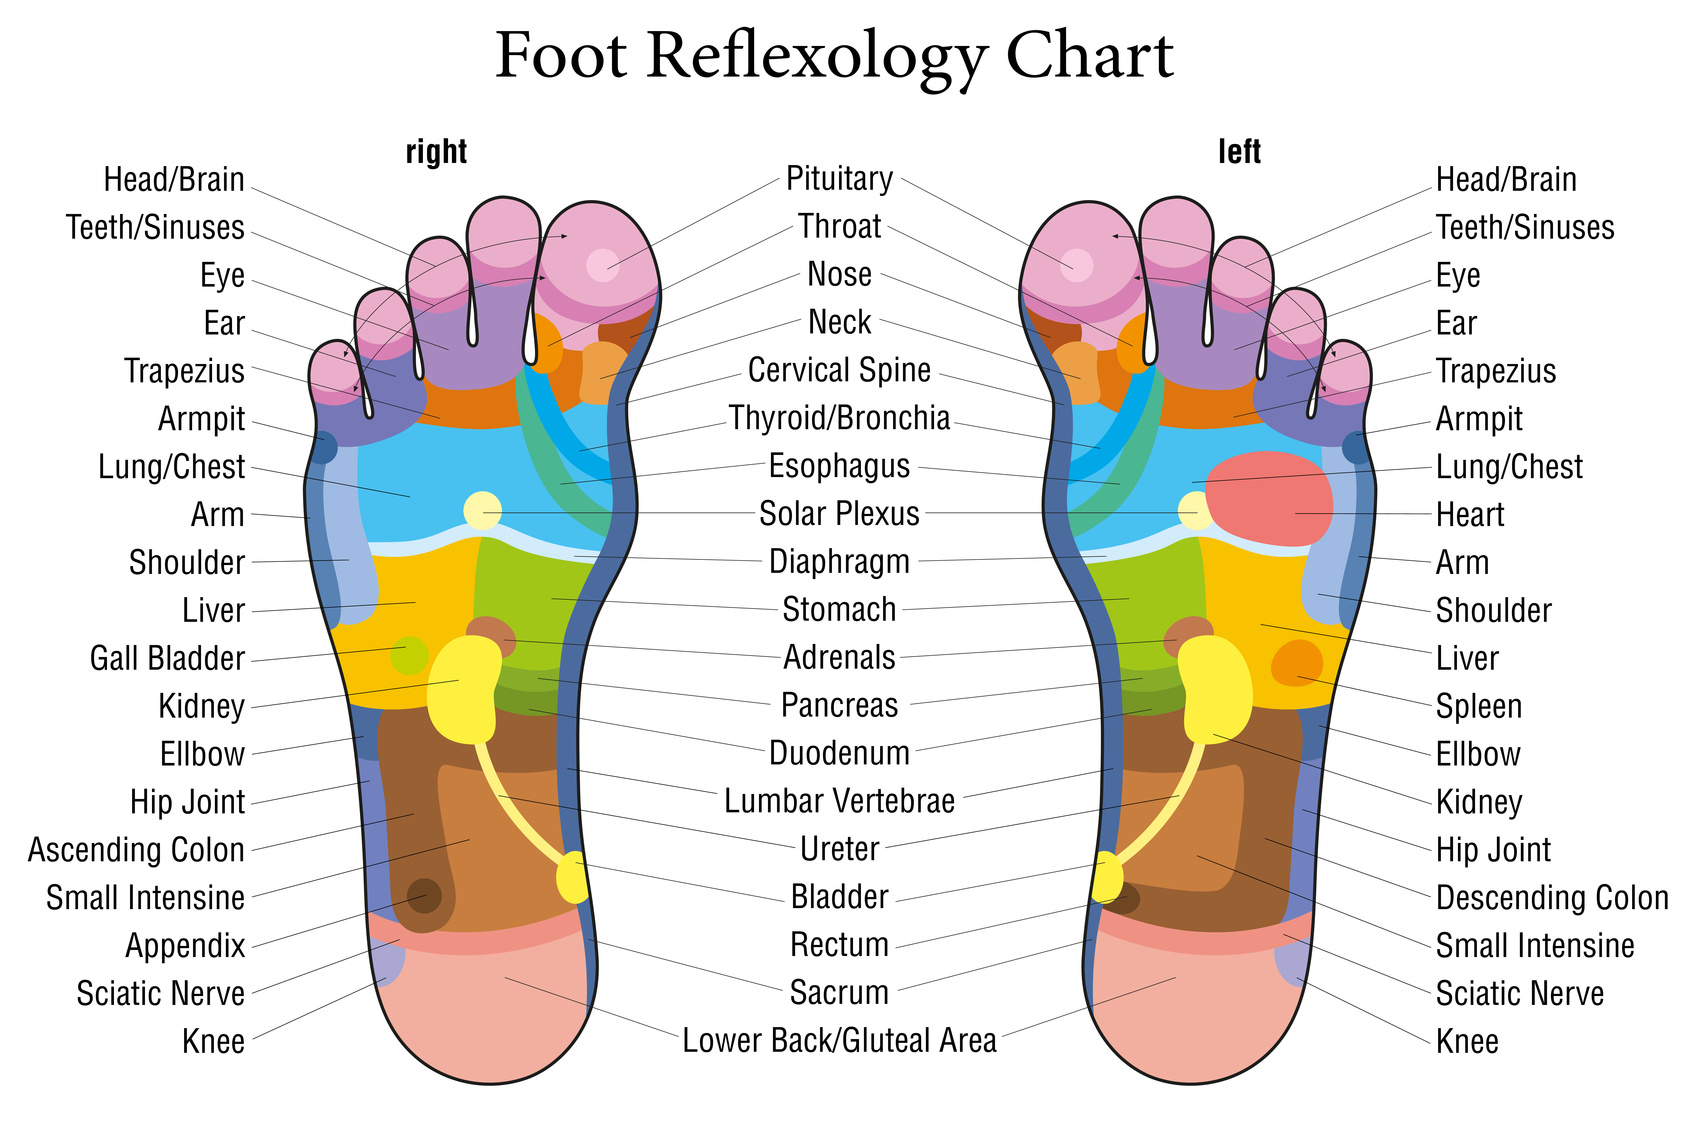 Foot reflexology point